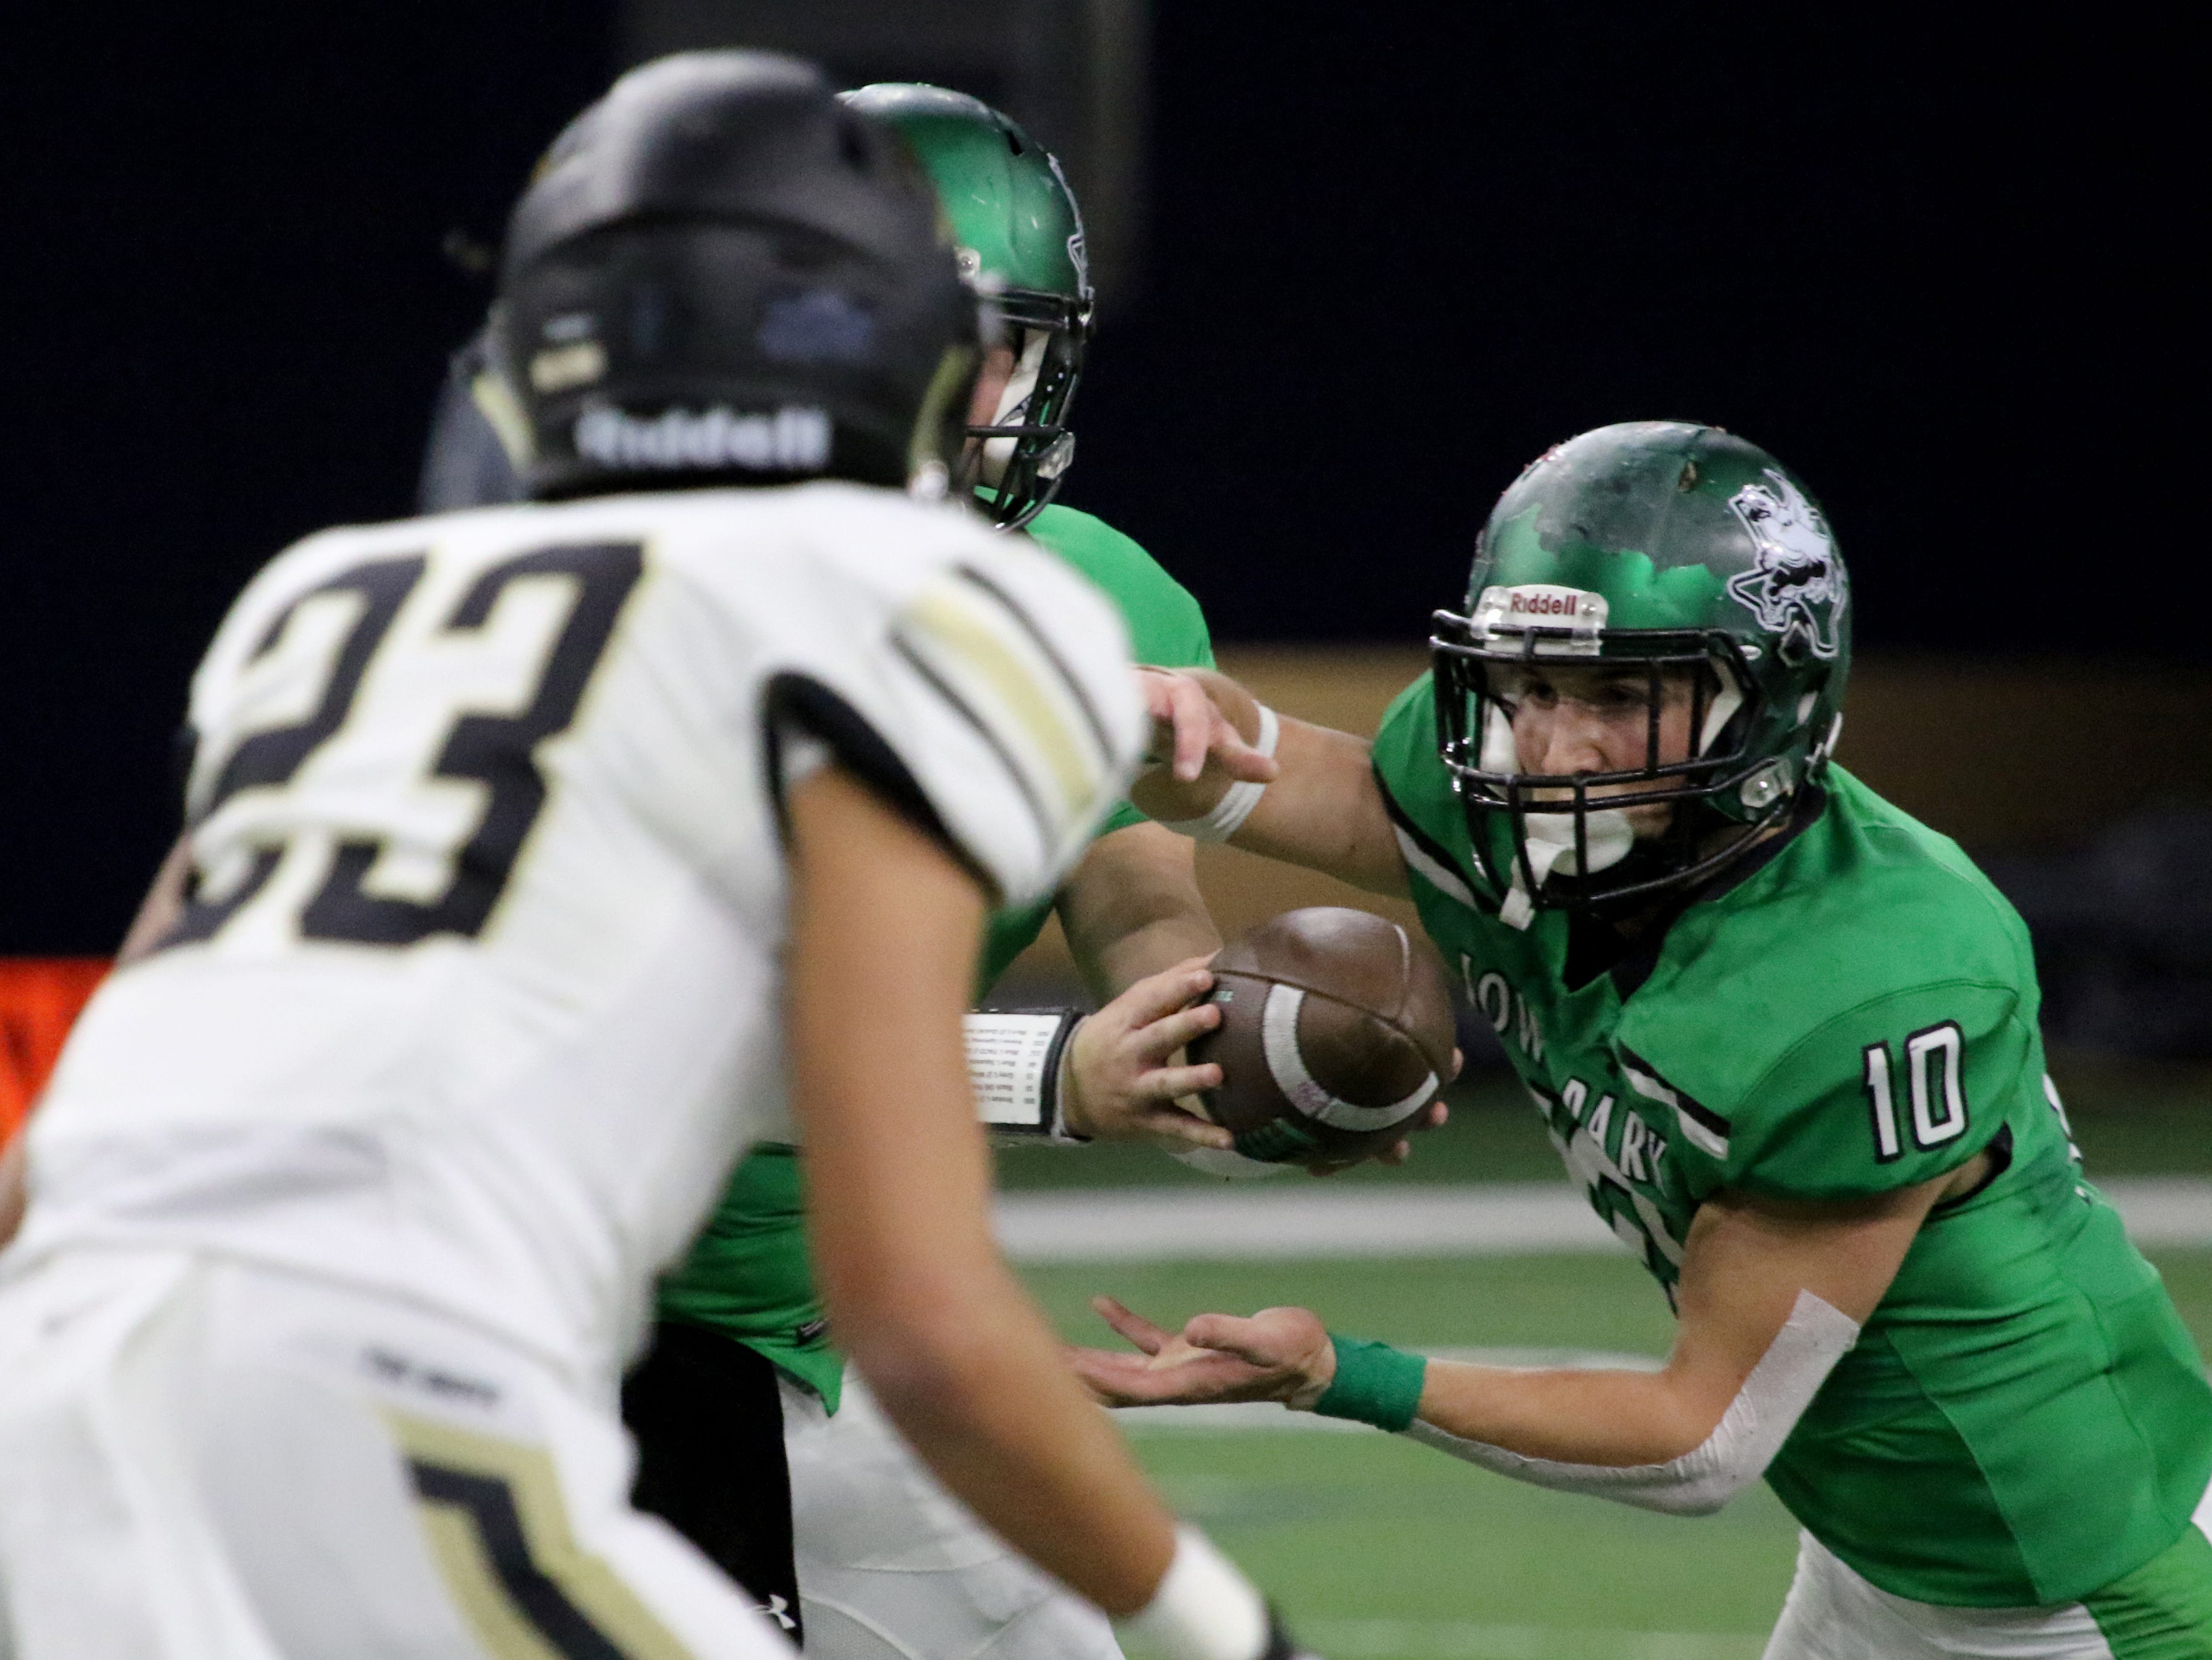 Iowa Park's Brendin Fallon takes the handoff in the Class 4A Division II semifinal against  Pleasant Grove Friday, Dec. 14, 2018, at the Ford Center in Frisco.